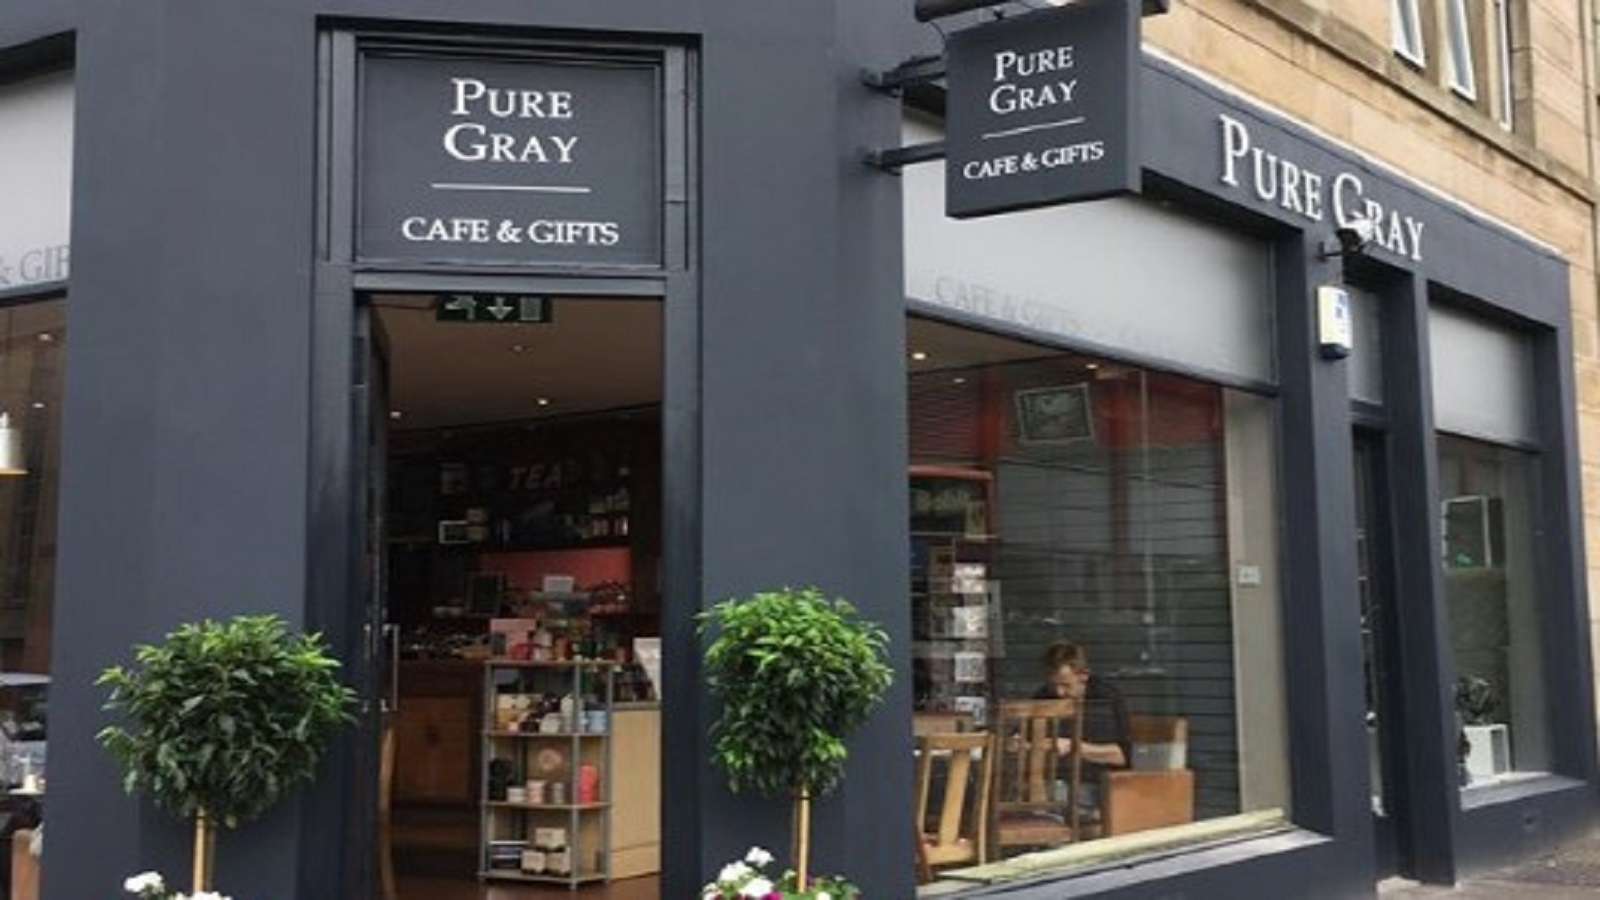 Pure Gray Cafe & Gifts